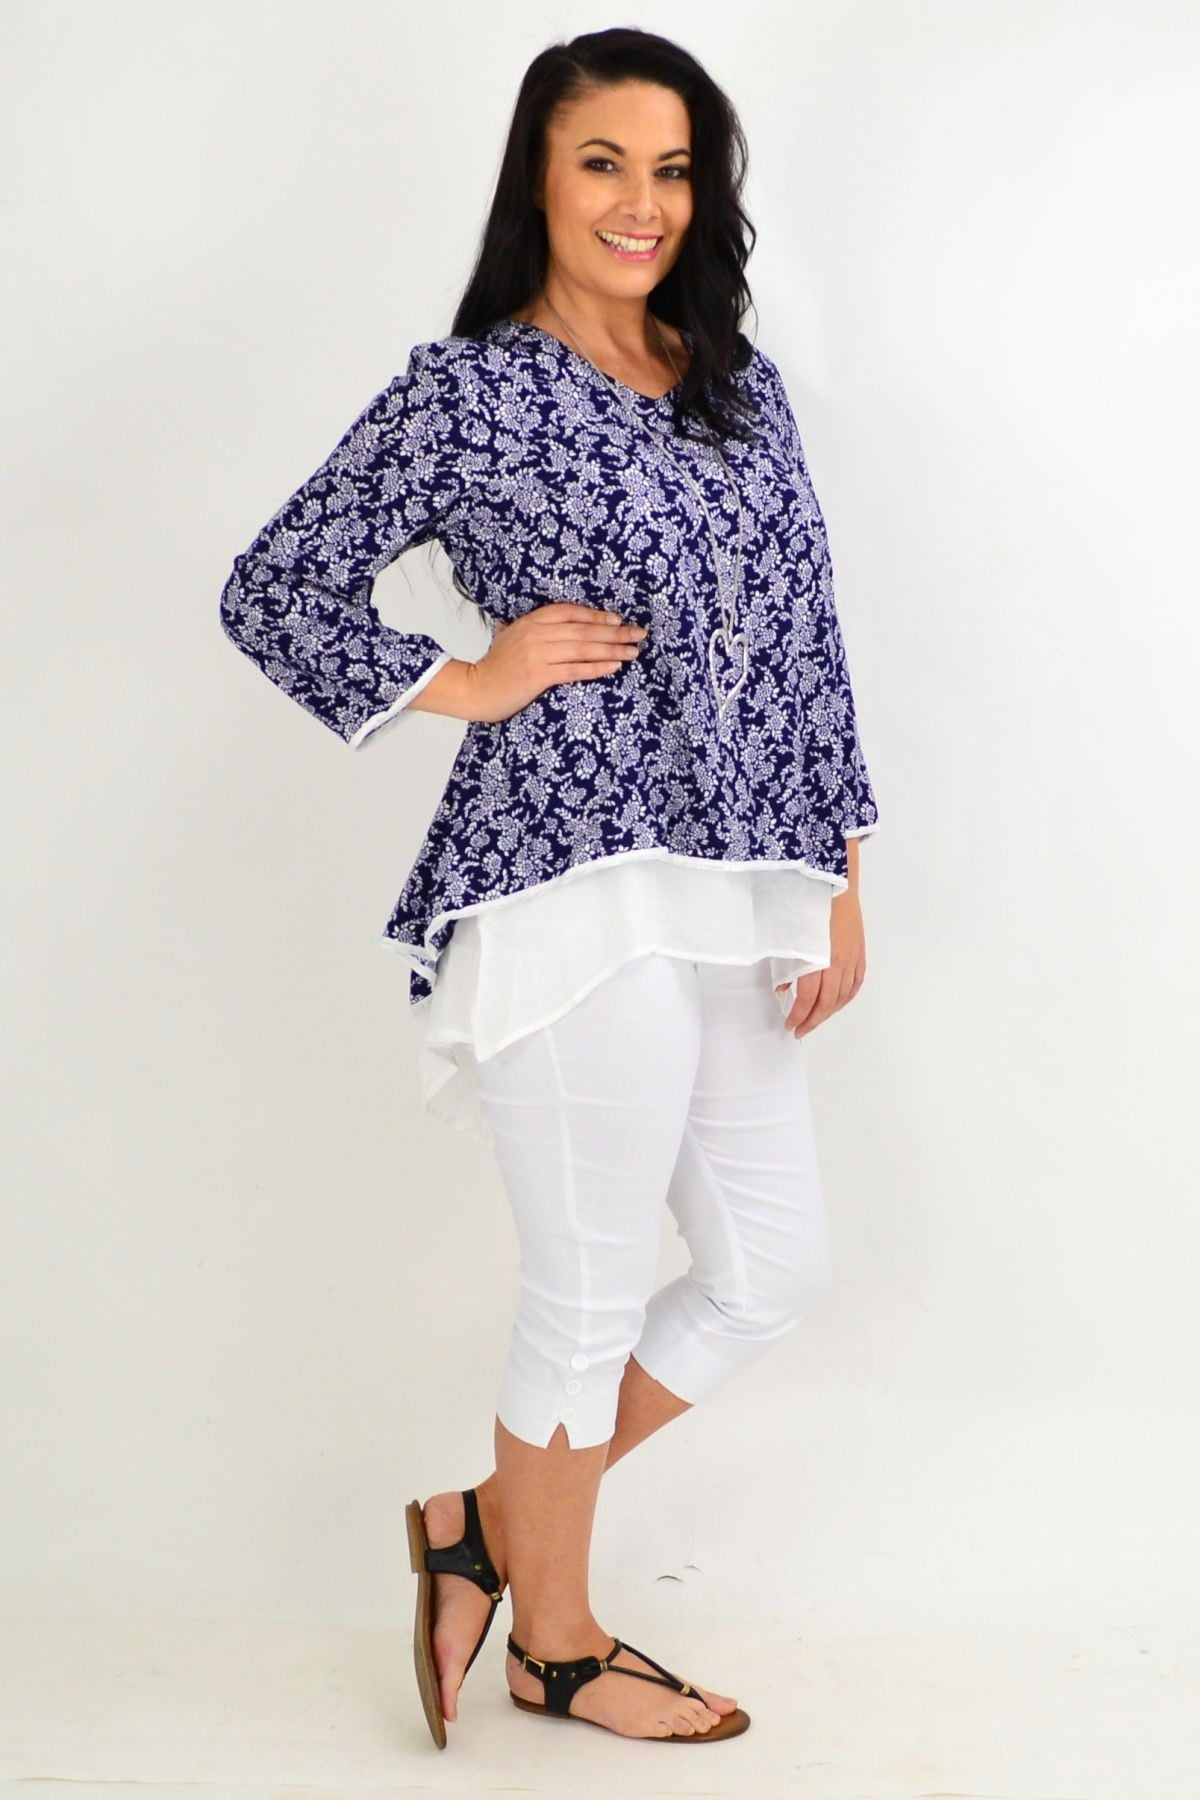 Navy & White Floral Layered Tunic Top | I Love Tunics | Tunic Tops | Tunic | Tunic Dresses  | womens clothing online